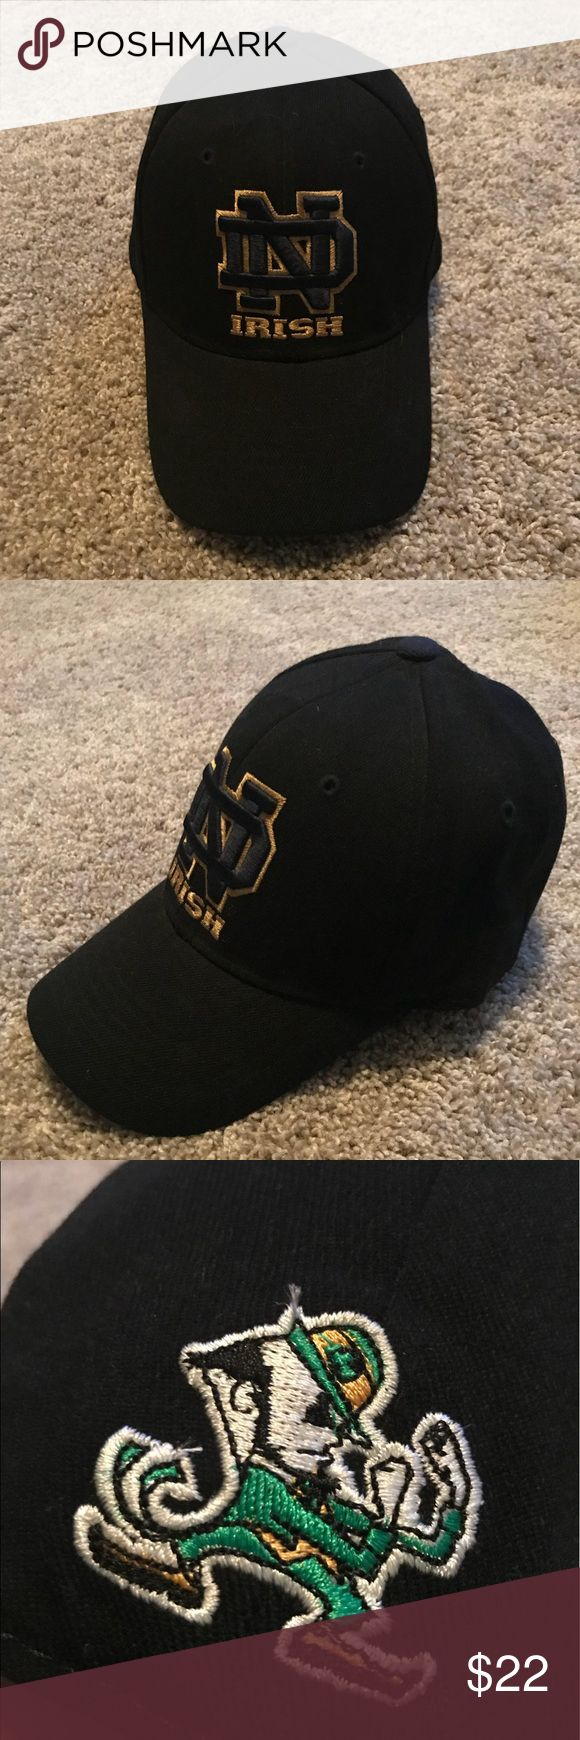 Notre Dame Fighting Irish Black Hat Top of the World brand One•Fit No tears, no stains, no rips Worn once or twice  Great condition Notre Dame Accessories Hats